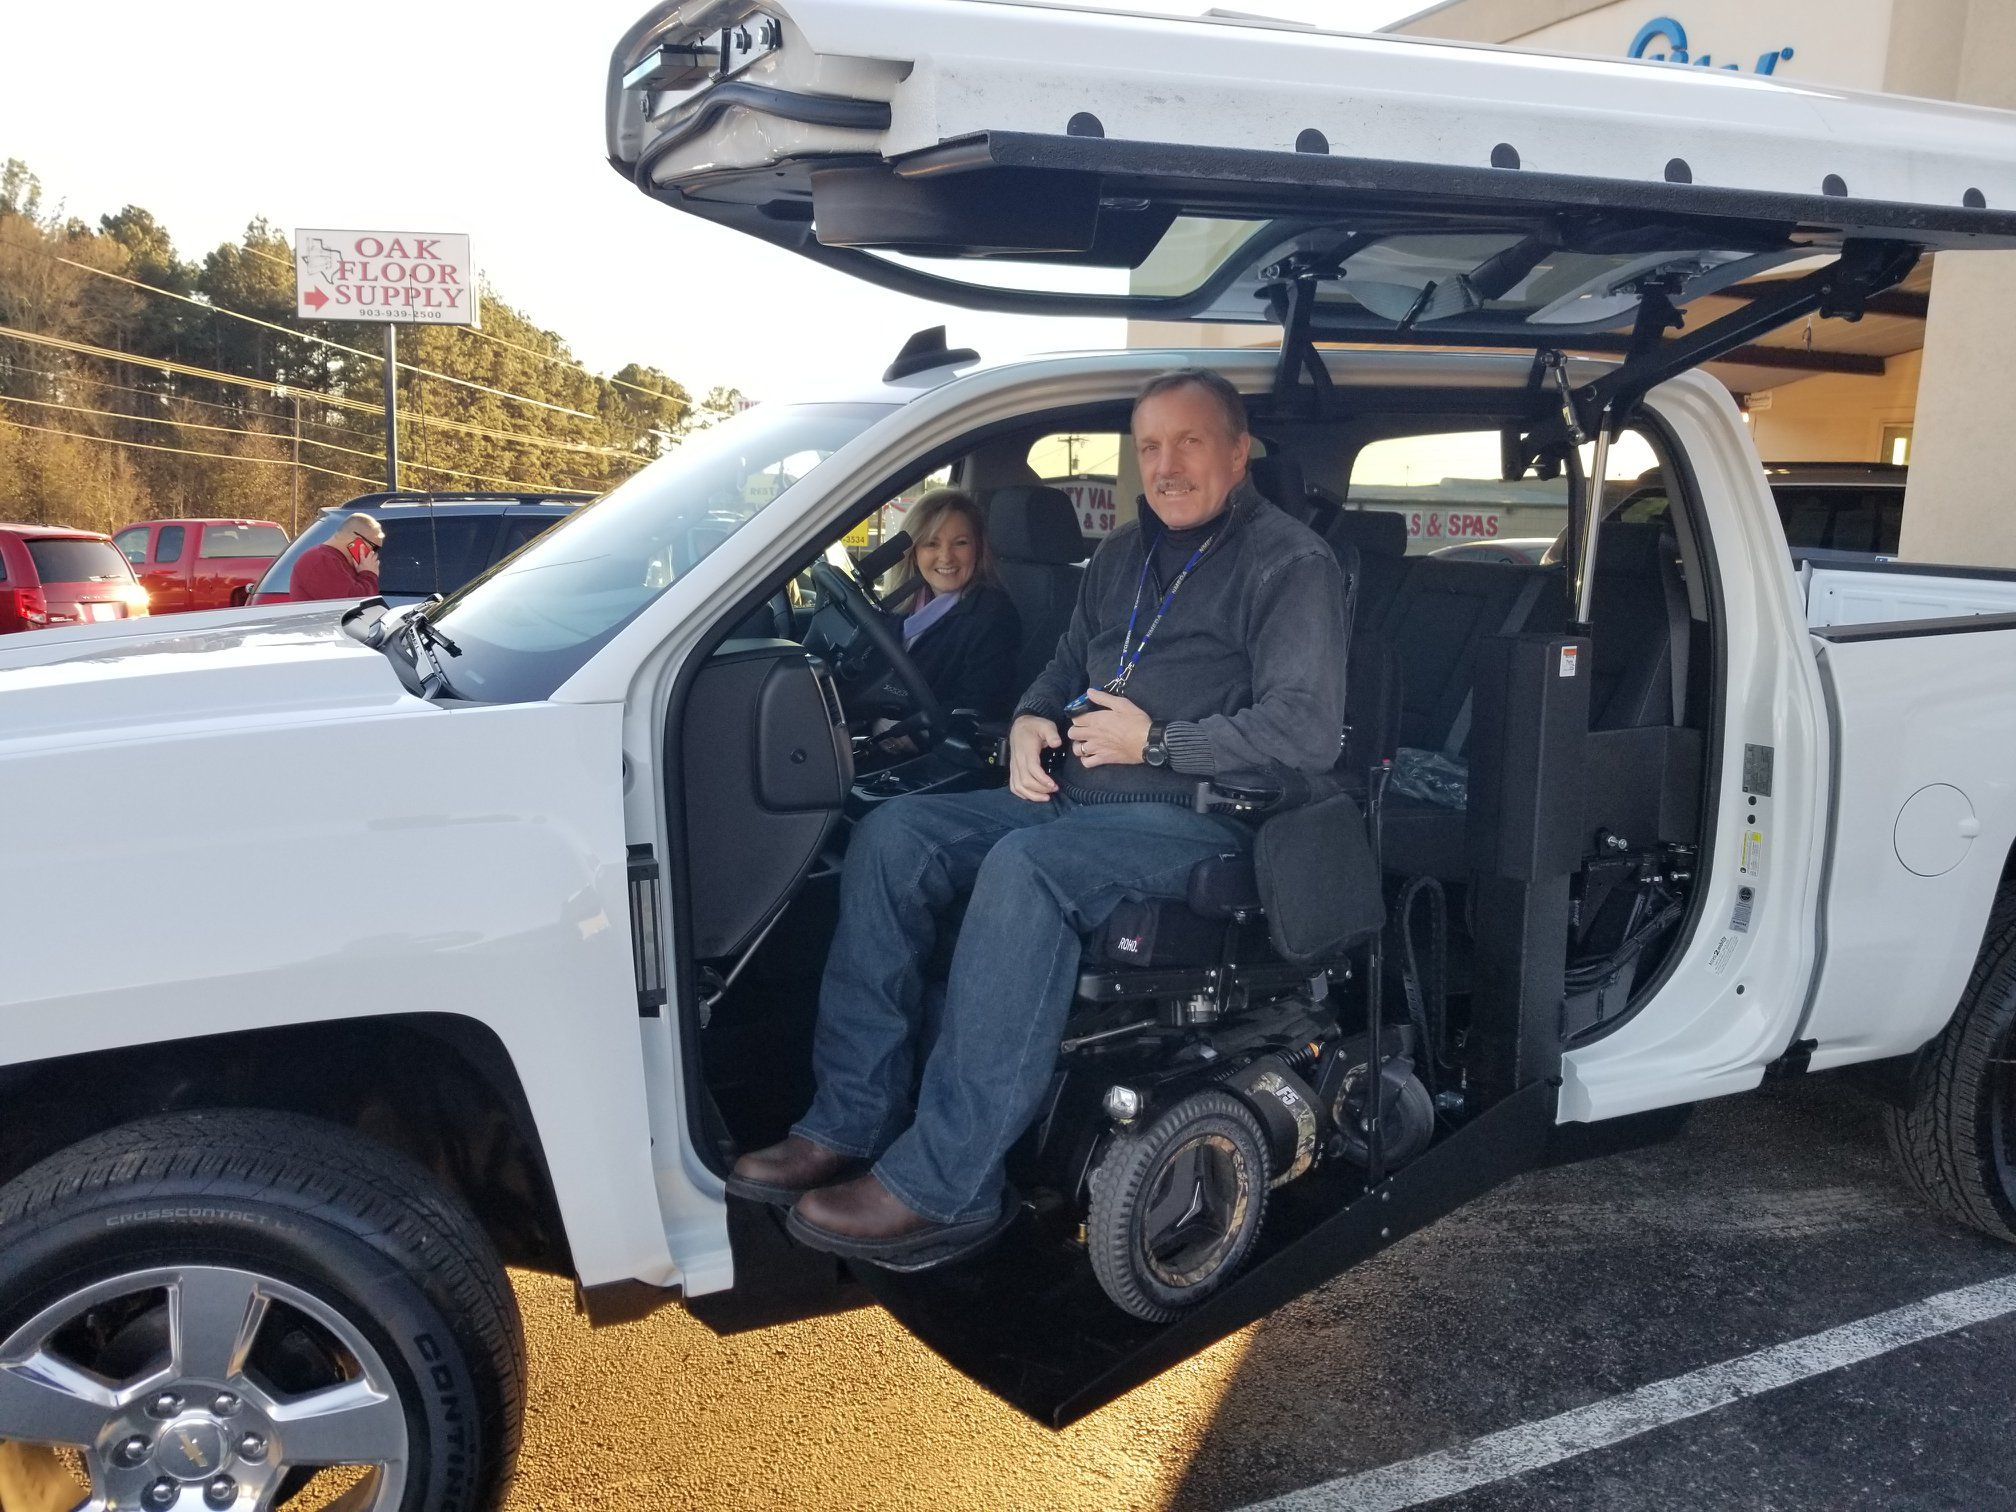 Another happy customer Wheelchair accessible vehicle